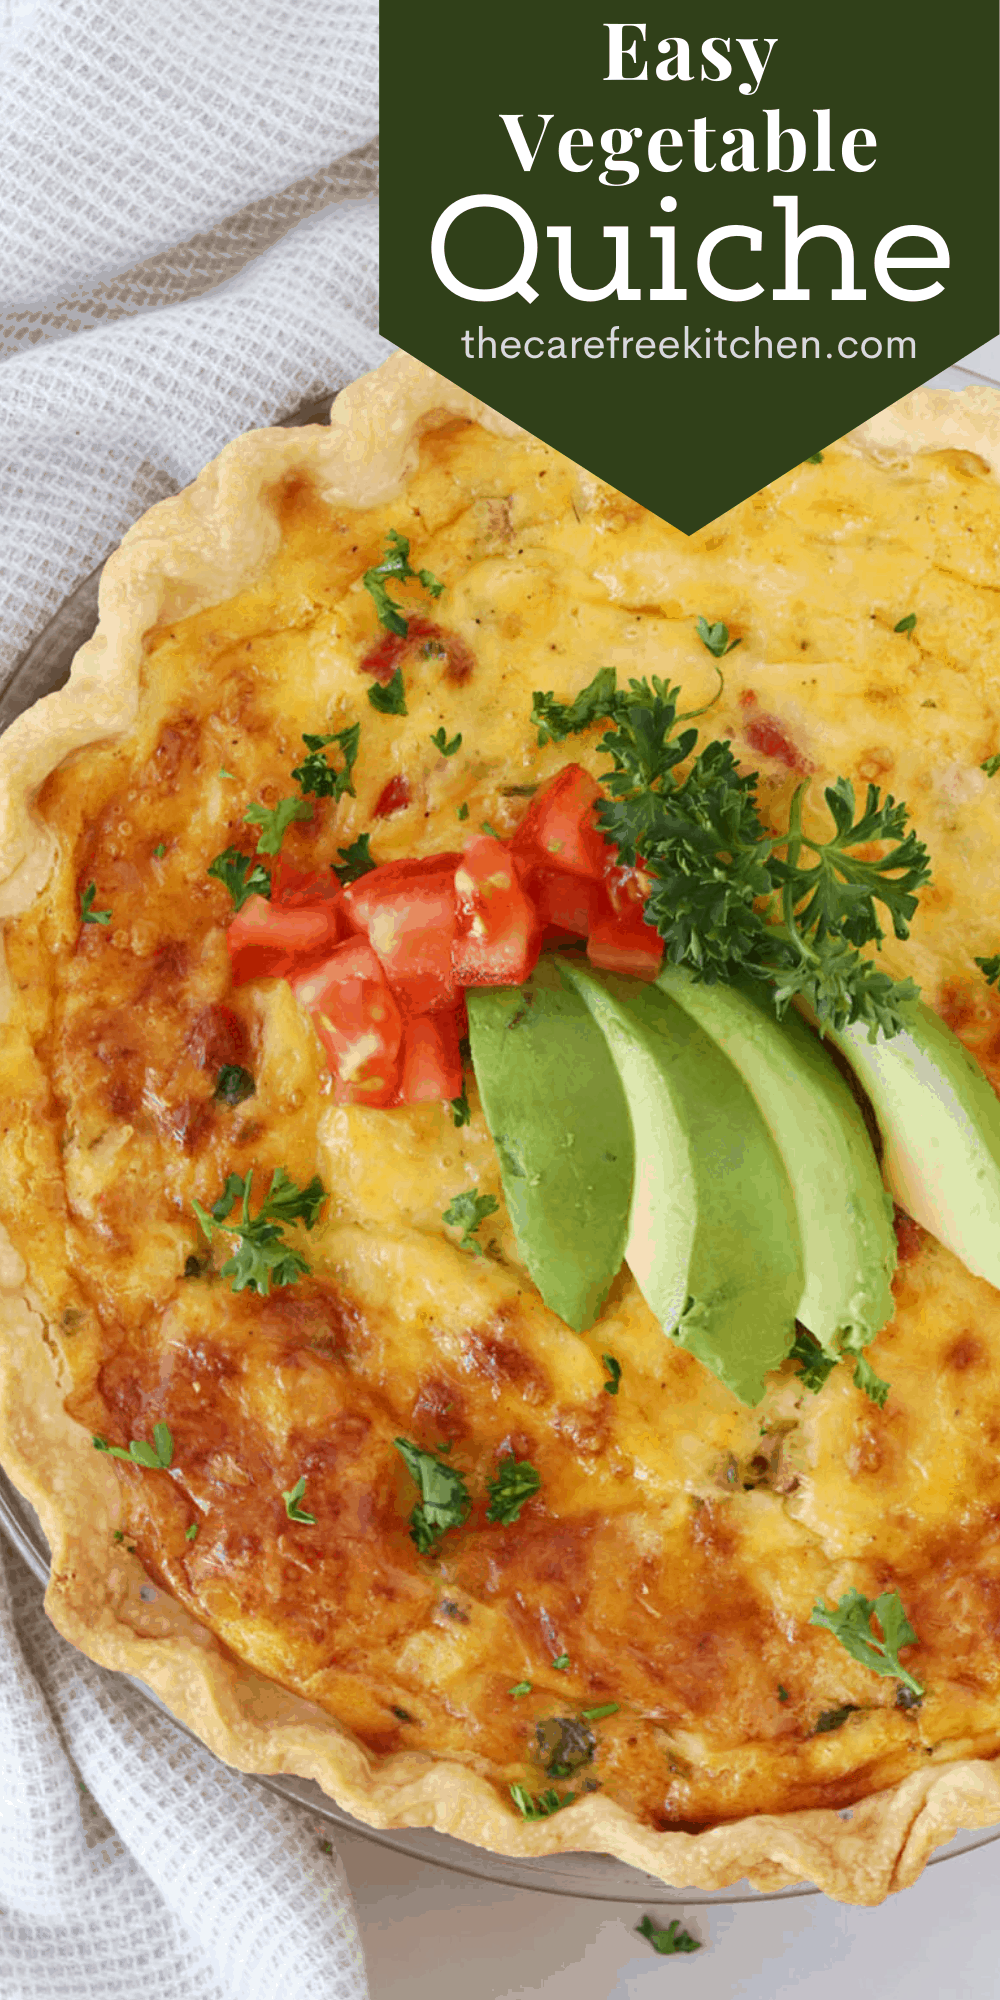 Pinterest pin for Vegetable Quiche